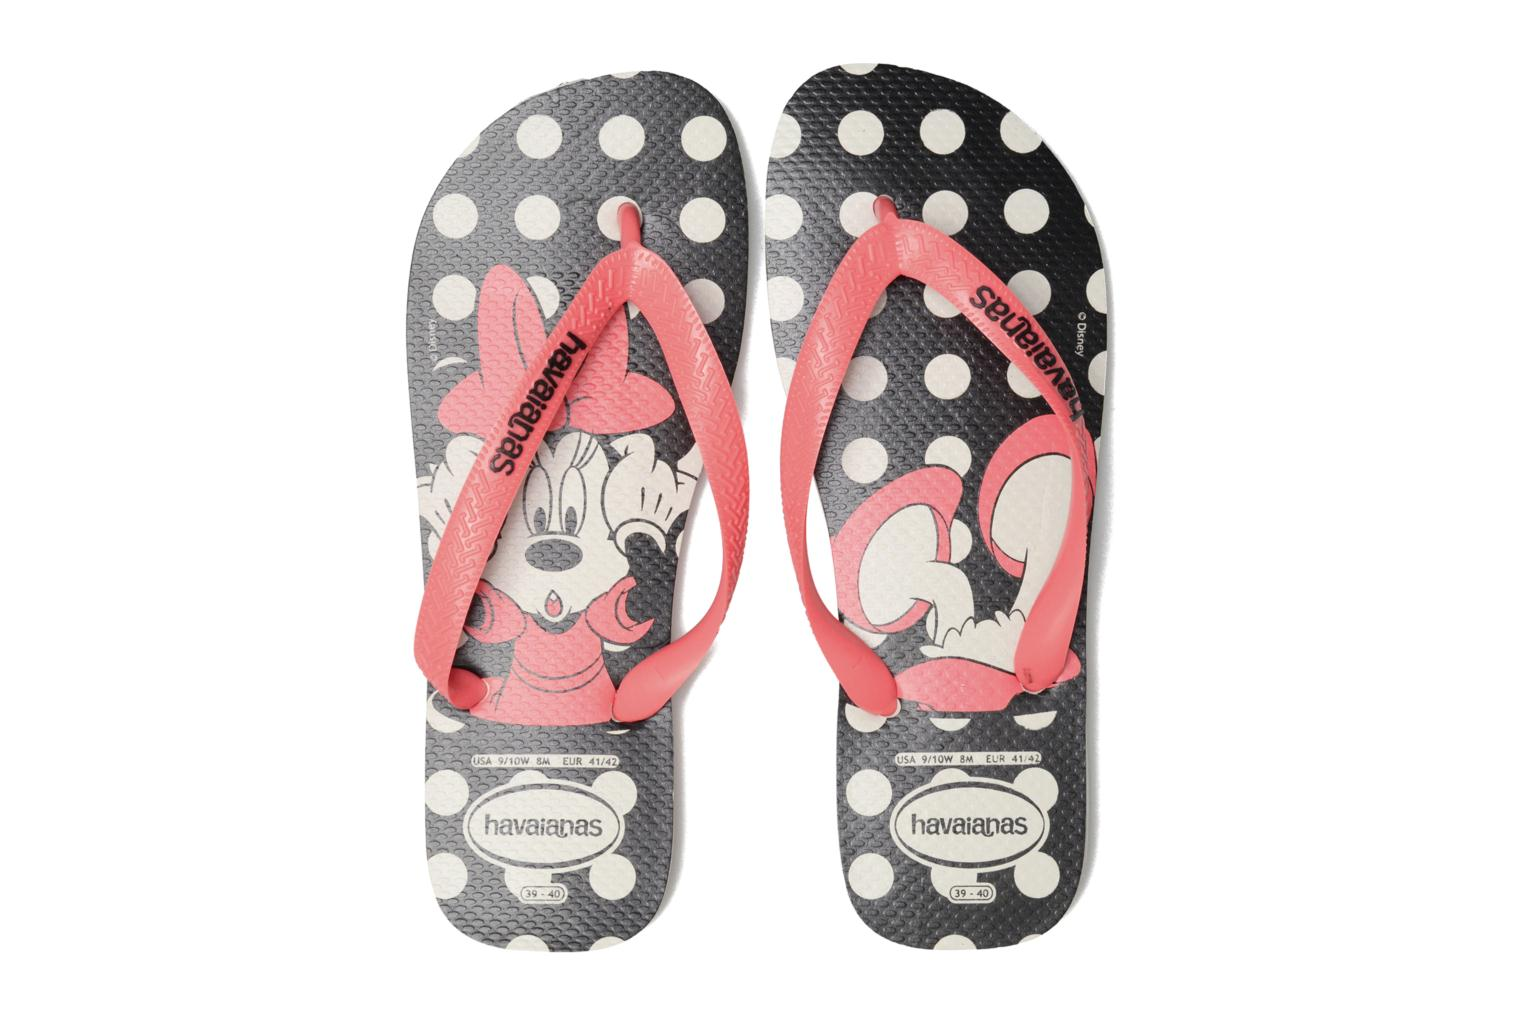 HAV. DISNEY STYLISH WHITE/CORAL NEW FLUOR